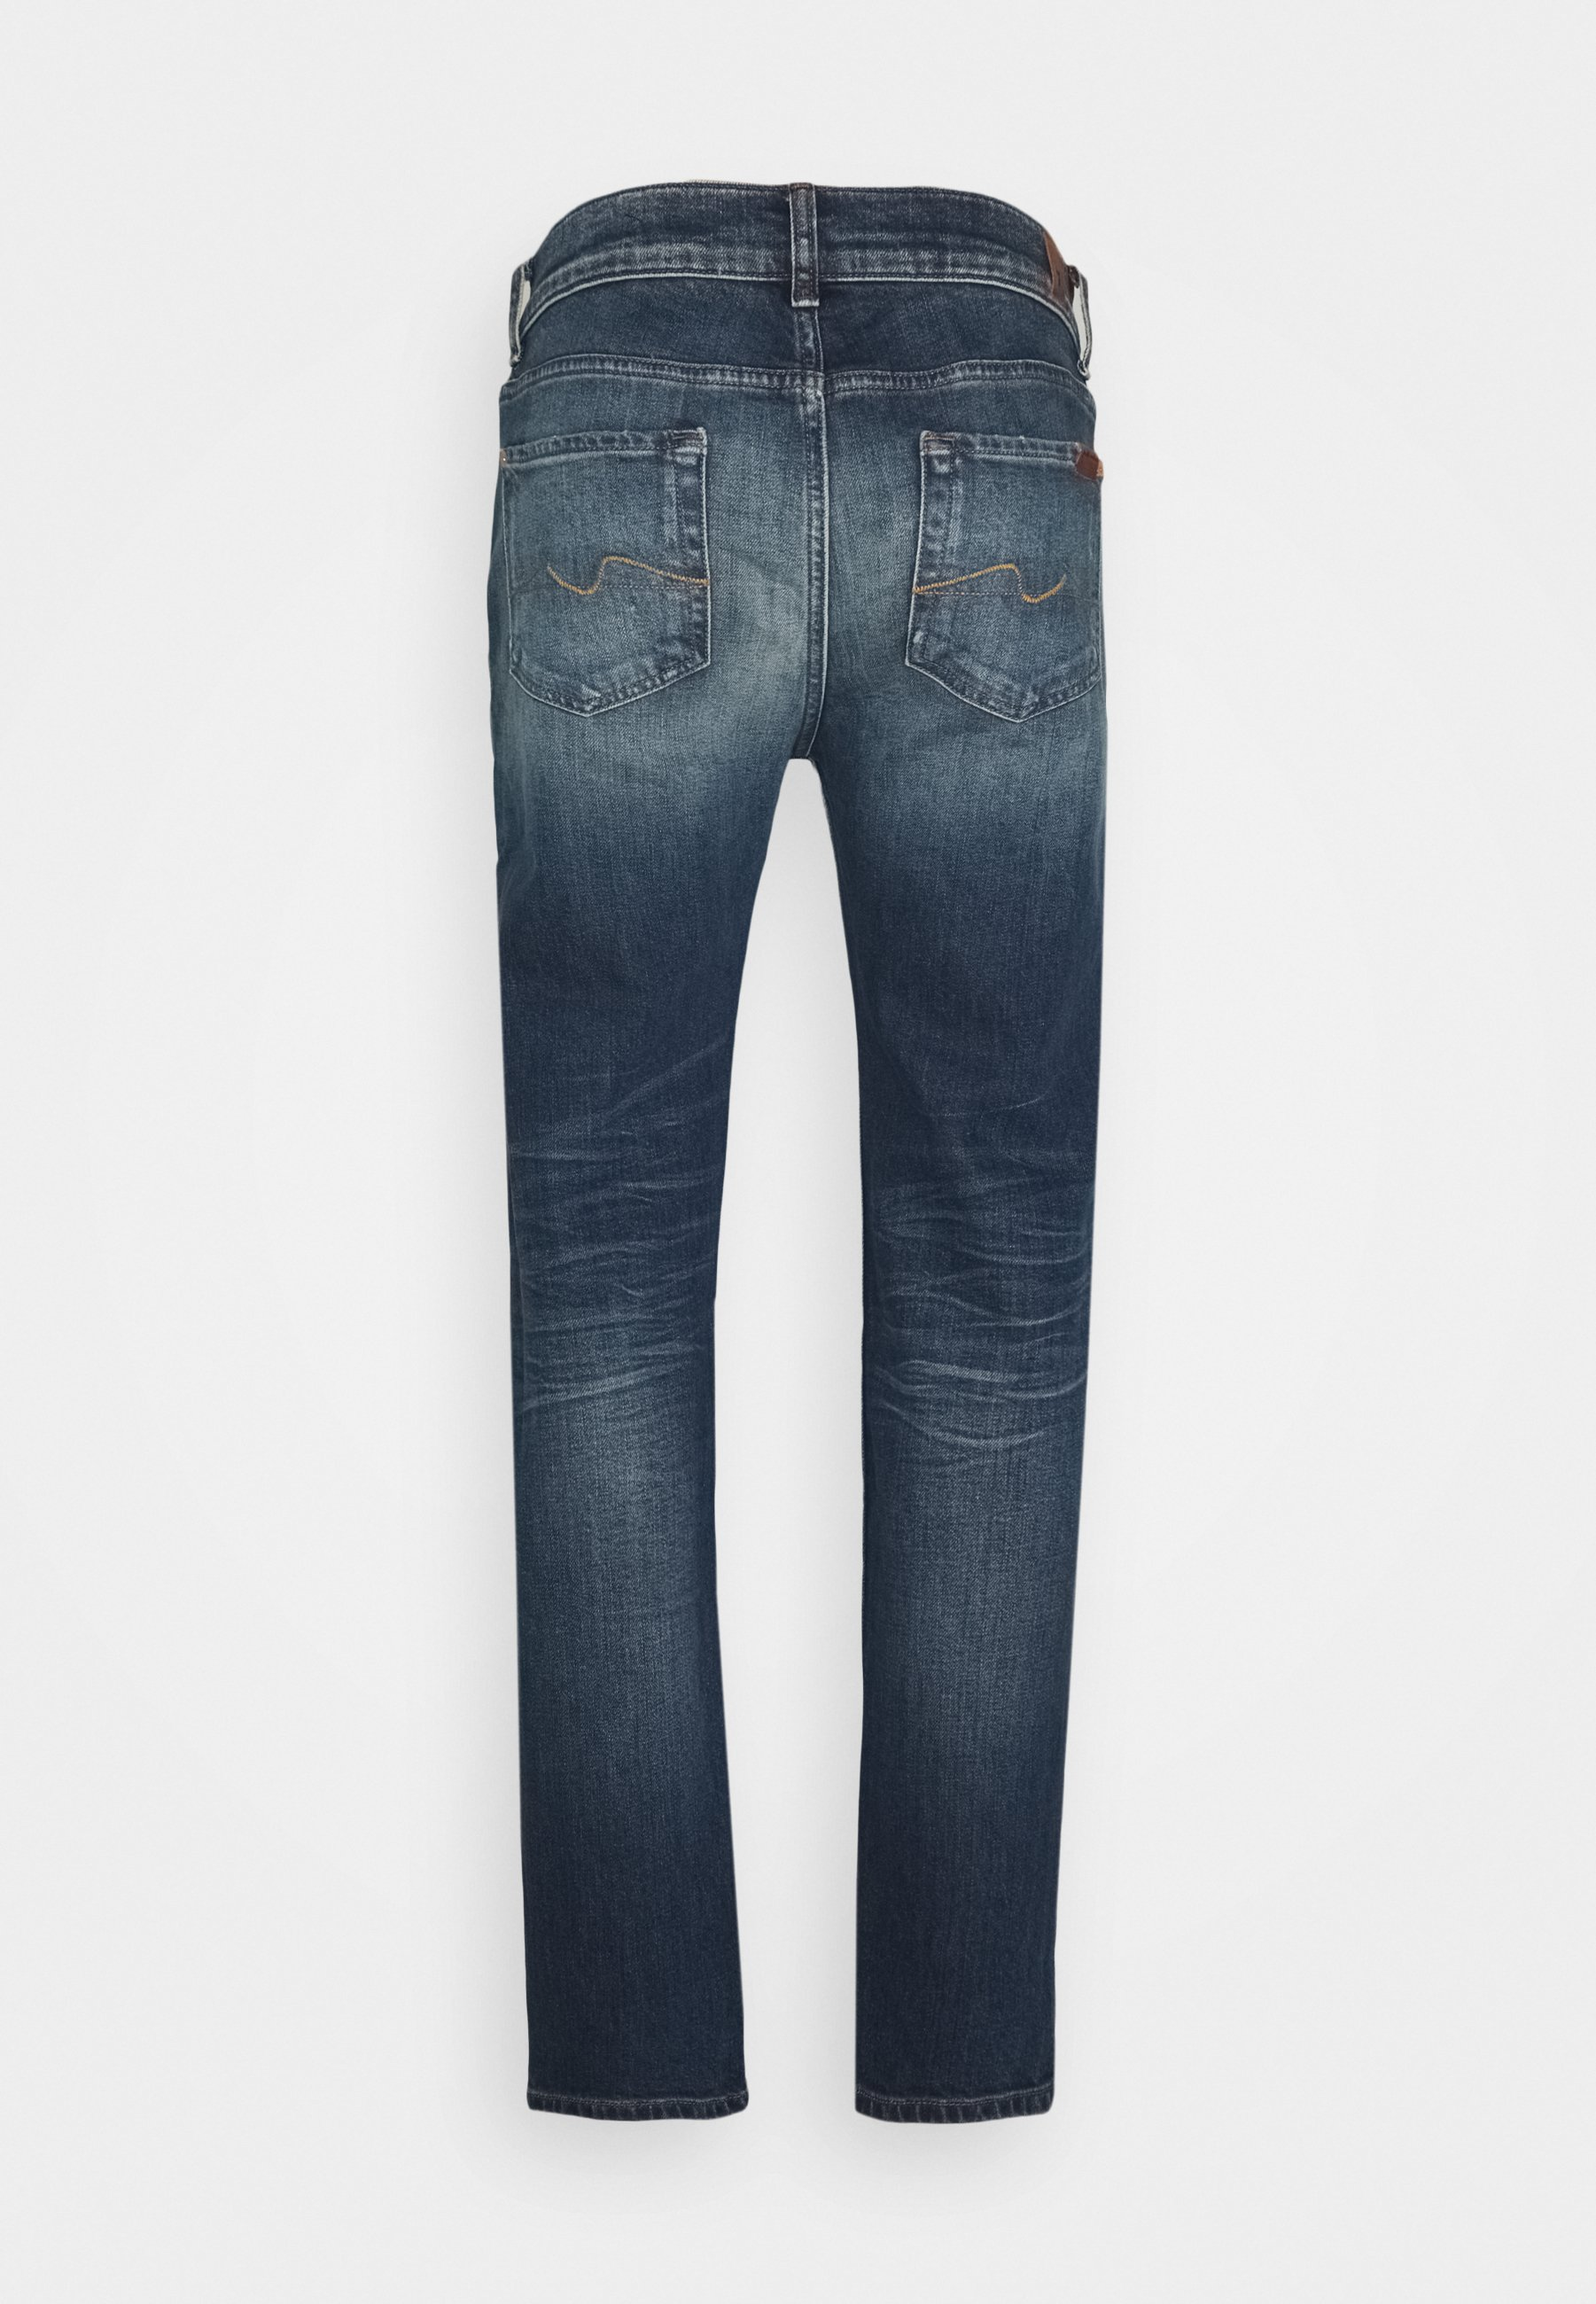 7 For All Mankind Slimmy Guard - Jeans Tapered Fit Dark Blue